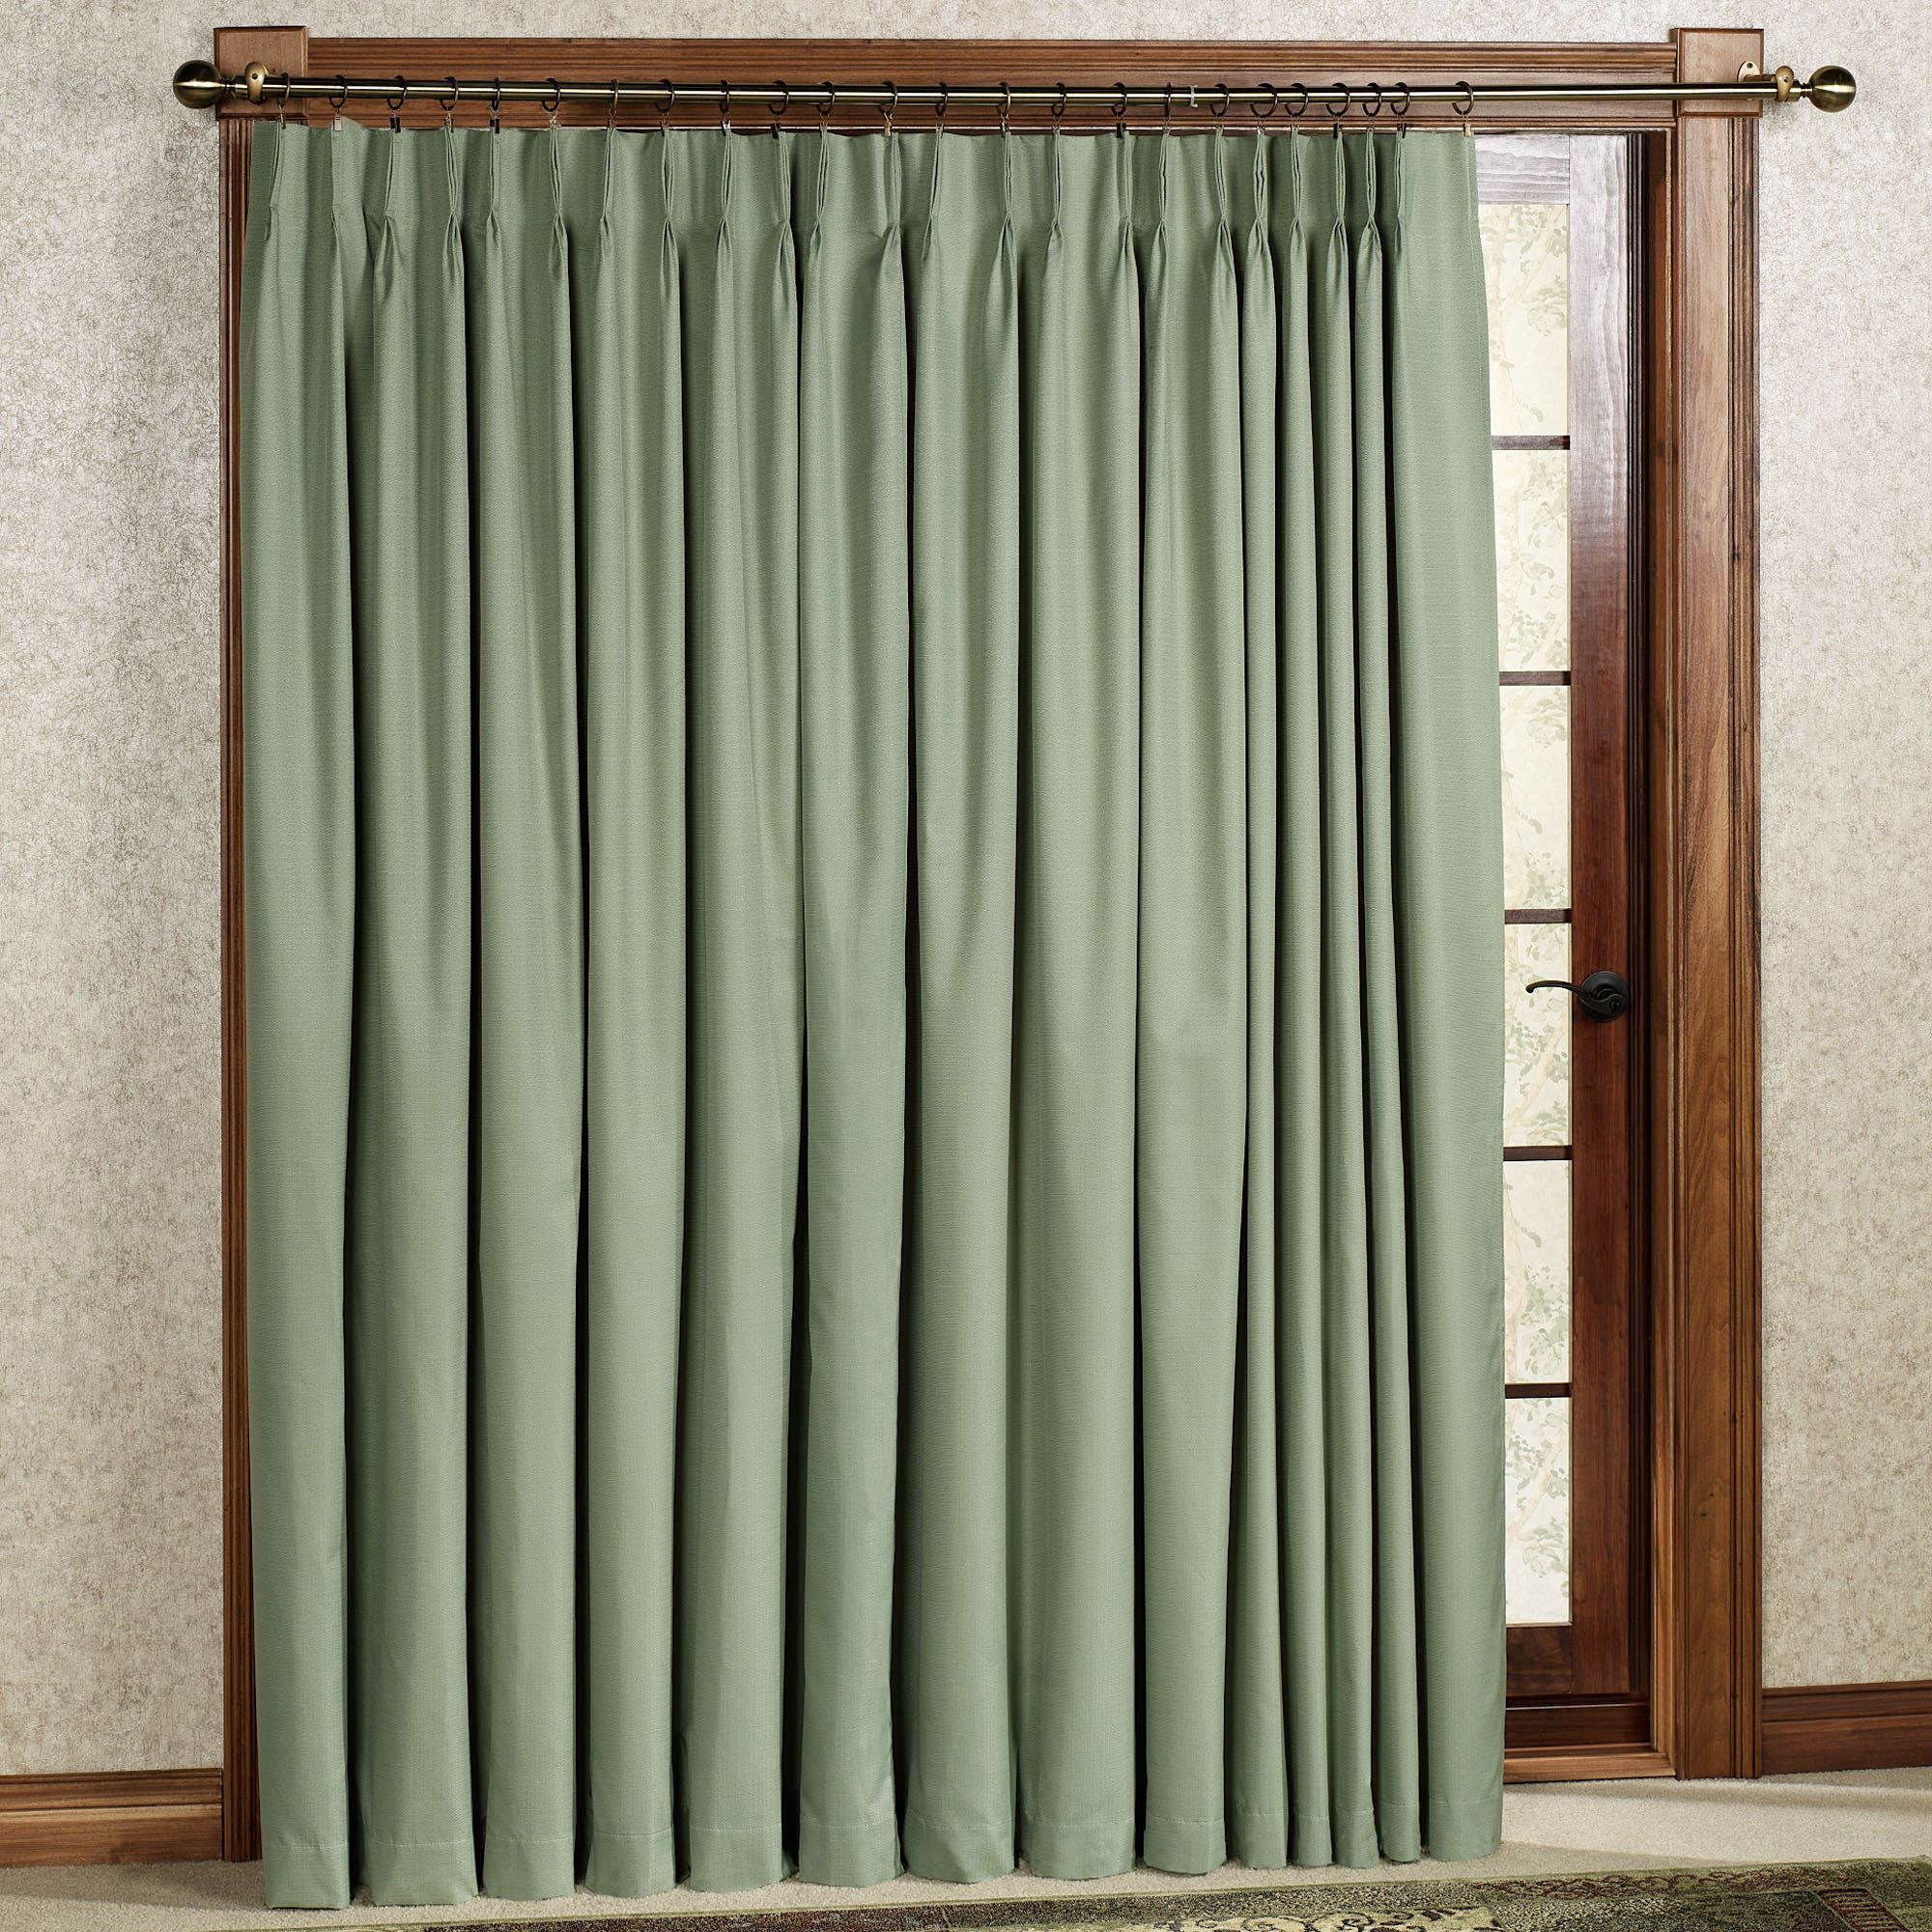 pinch pleat drapes click to expand NQIZJBJ